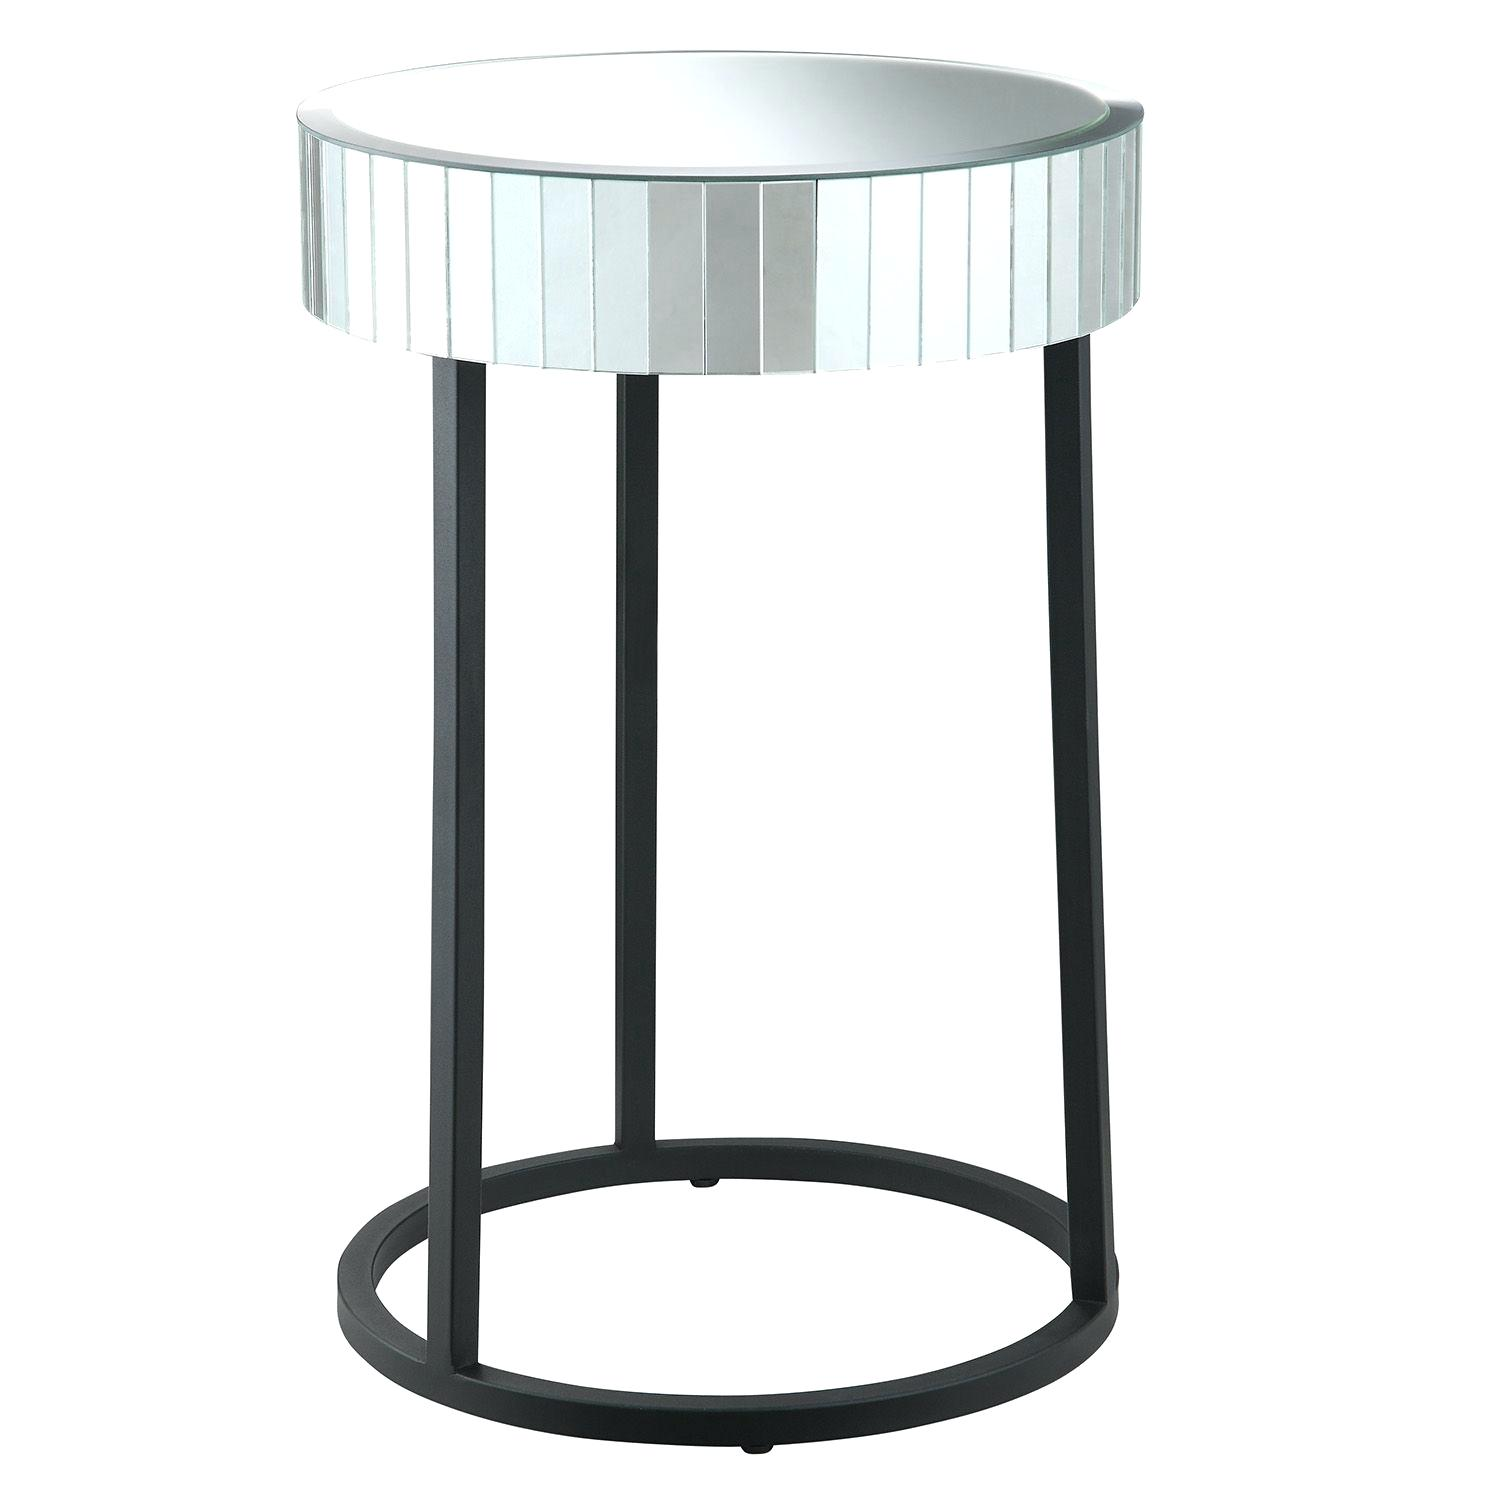 round mirror accent table pier tables mosaic lavorochogan info kenzie italian marble coffee square nesting drawer dishwasher house interior design half moon console tiffany lamps